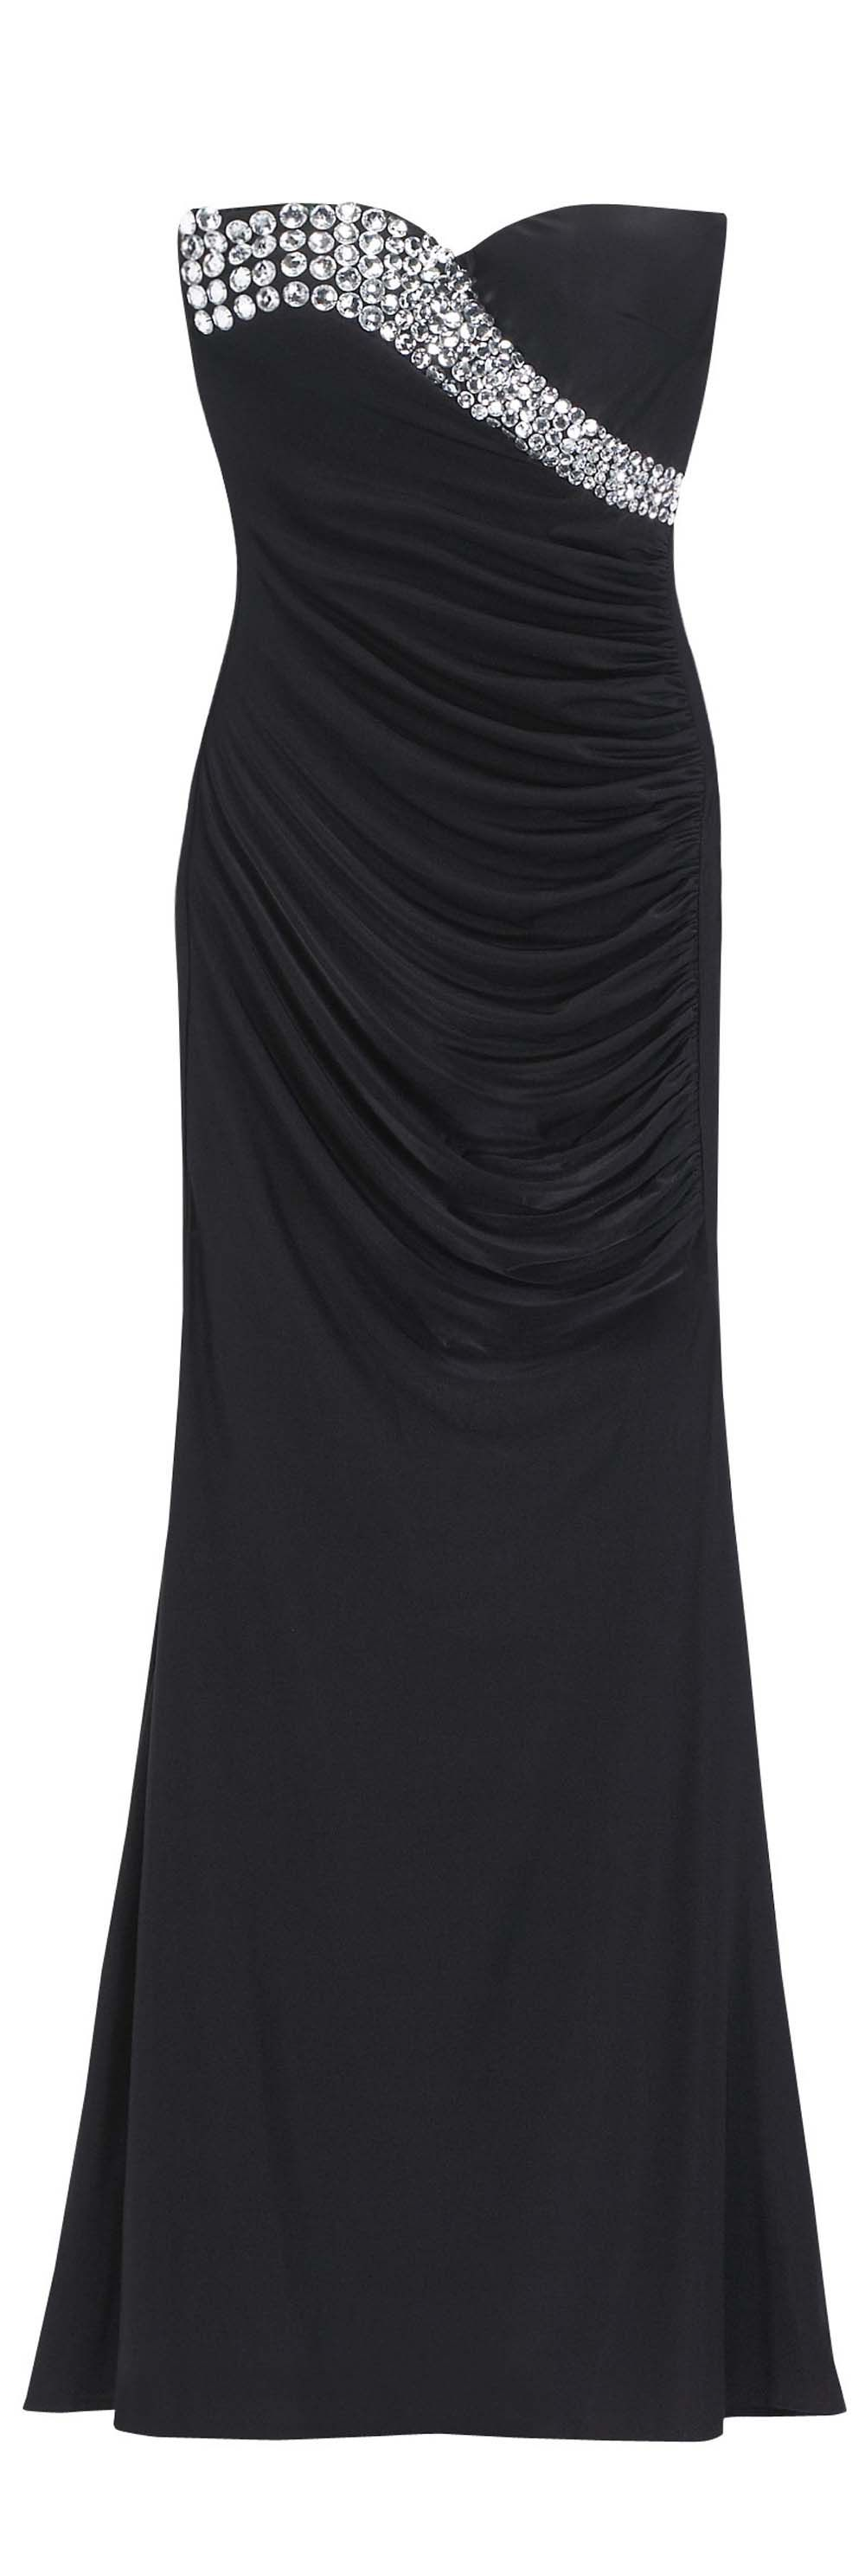 What To Wear On A Cruise Formal Night Evening Gown Cruise Vestry Prshots Cruise Dress Evening Gowns Cruise Attire